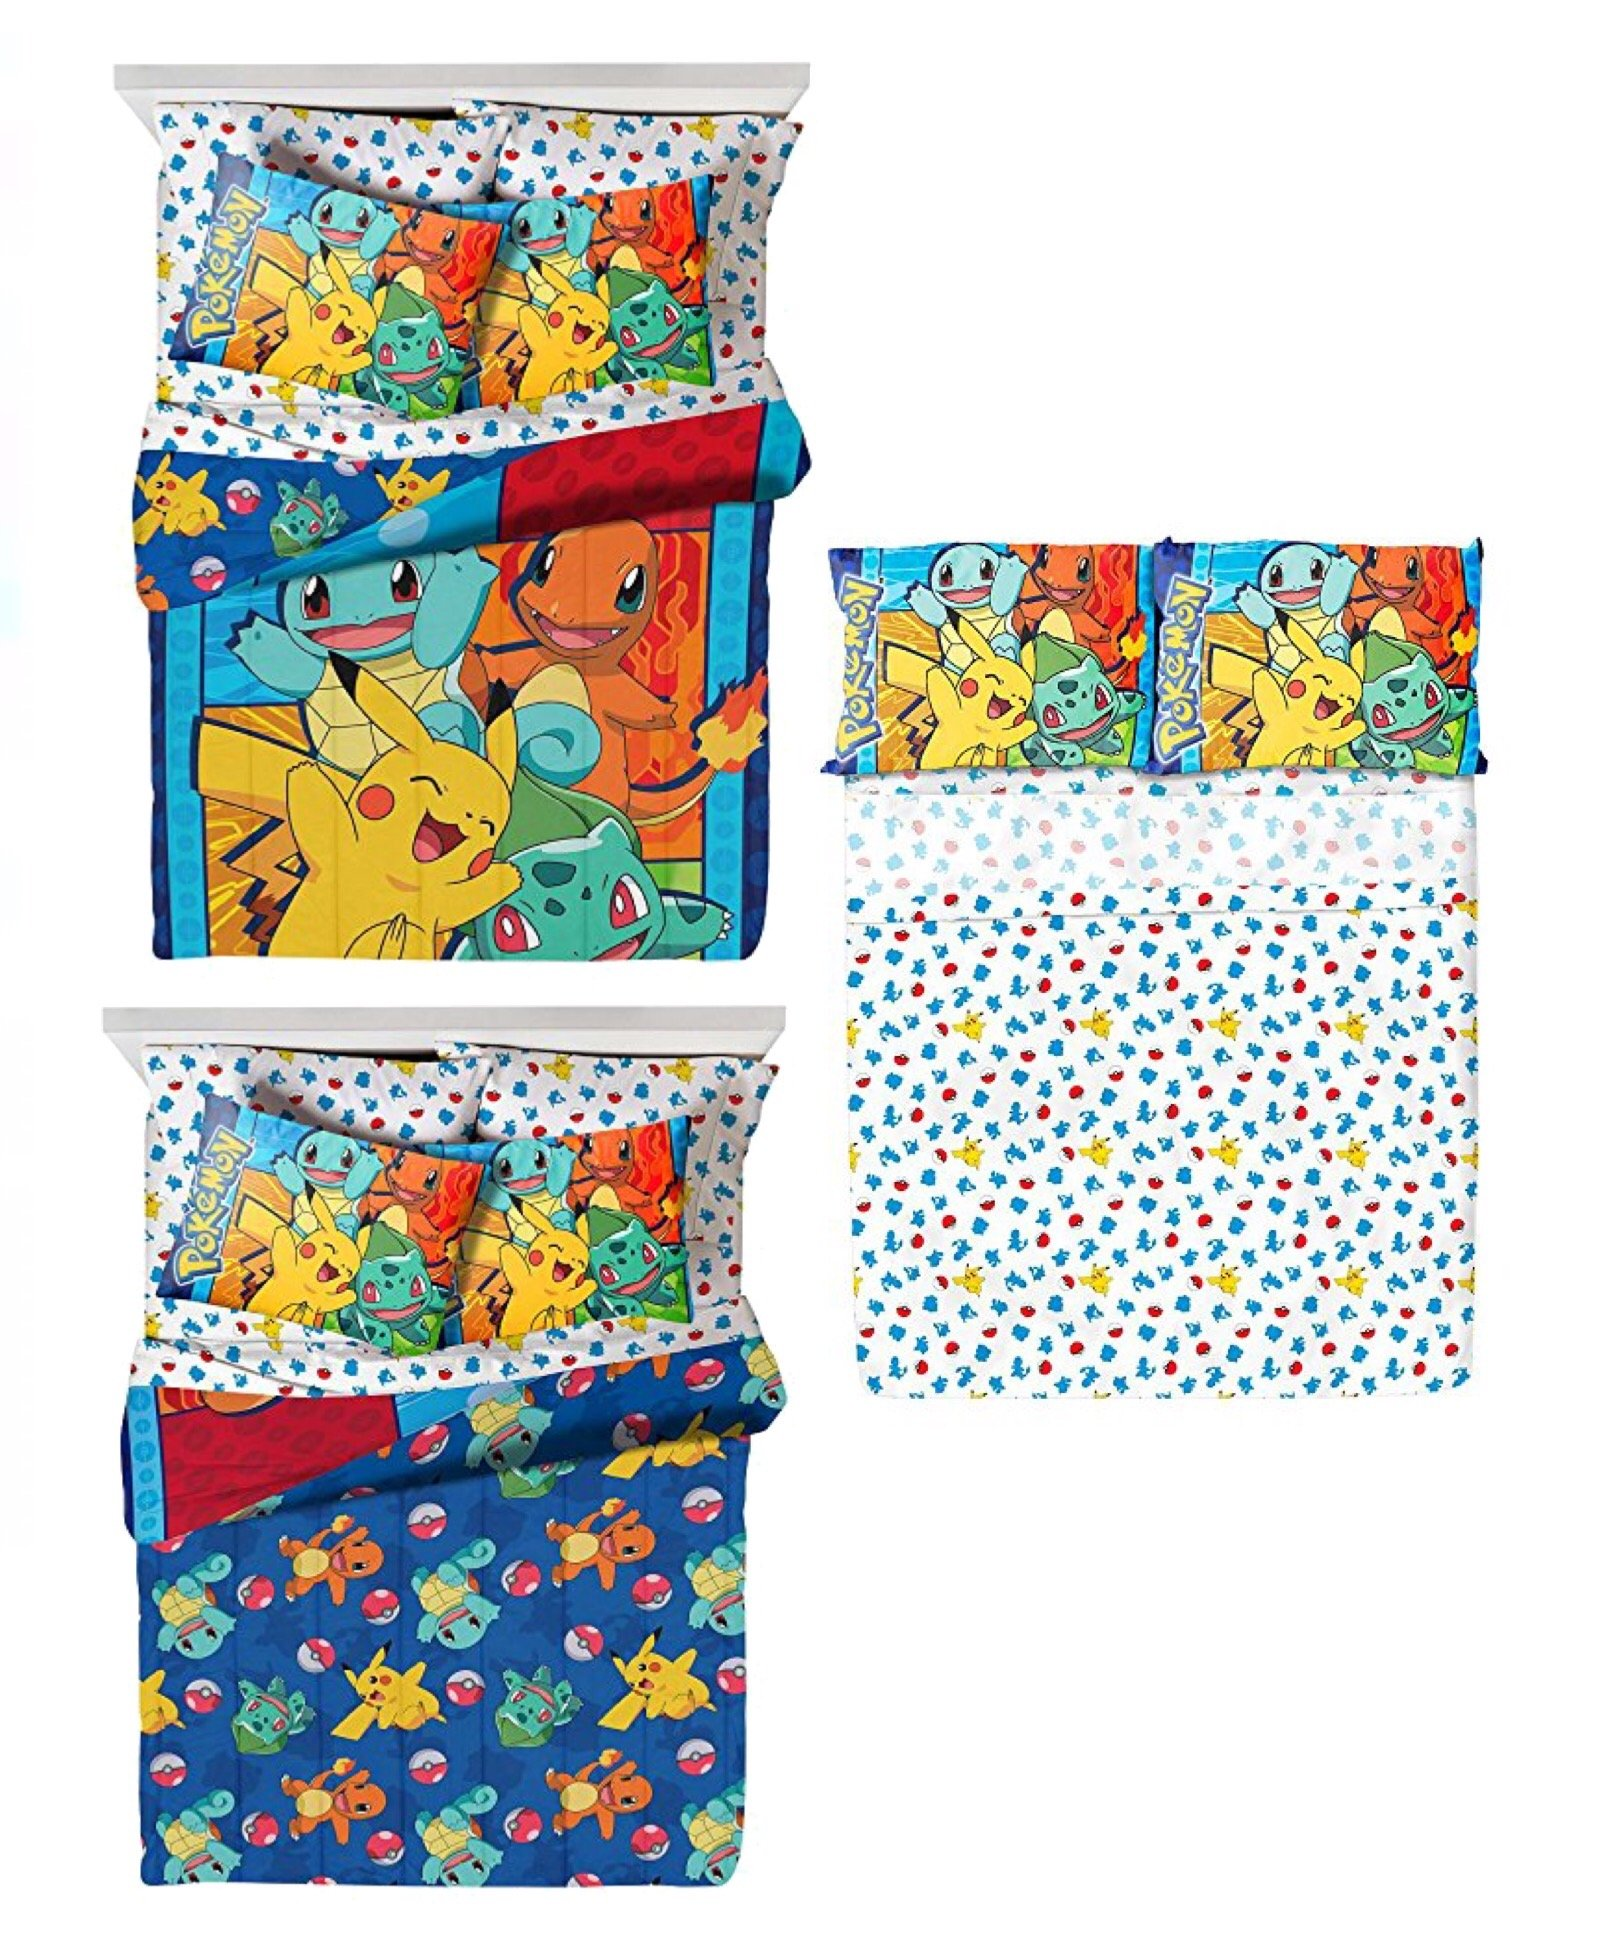 Pokémon 4 Piece Kids Twin Bedding Set - Reversible Comforter, Sheet Set with Reversible Pillowcase by Pokémon